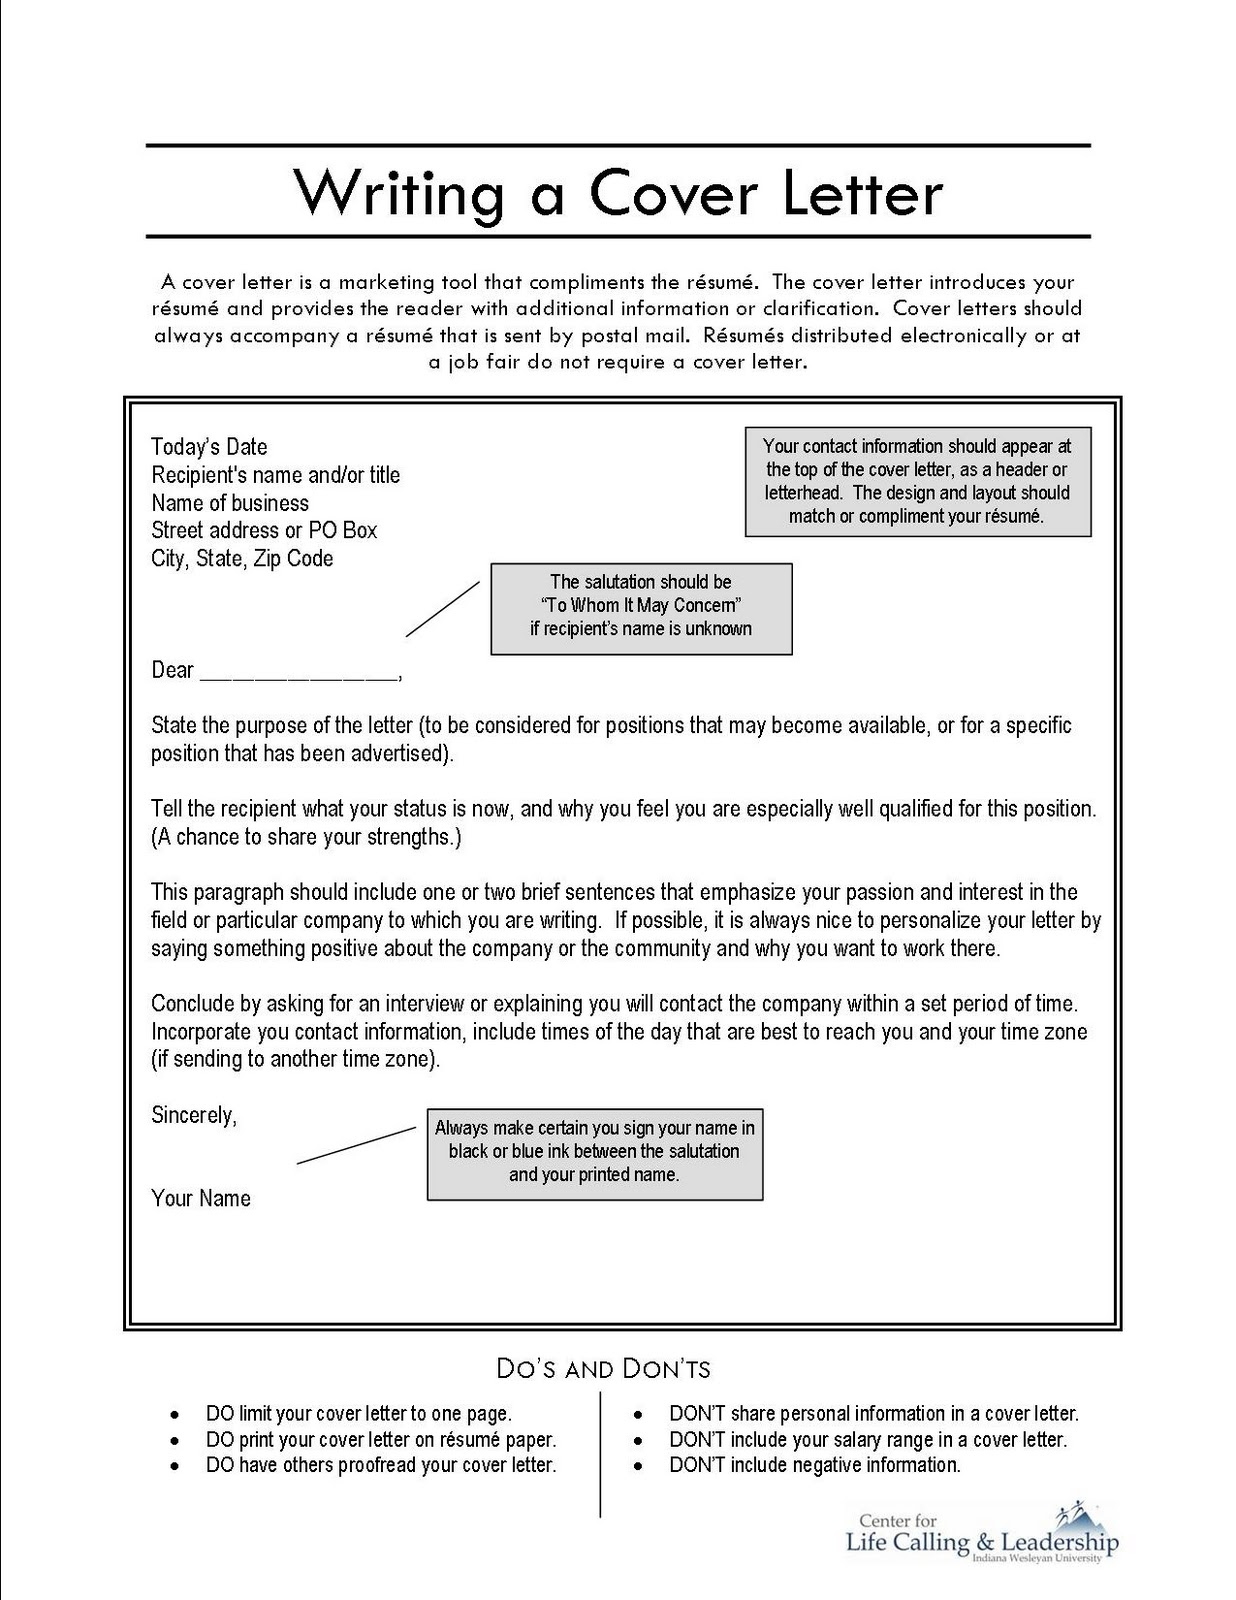 Resume How To Write An Email With Ingenious And Cover Letter Letters For Cv Samples